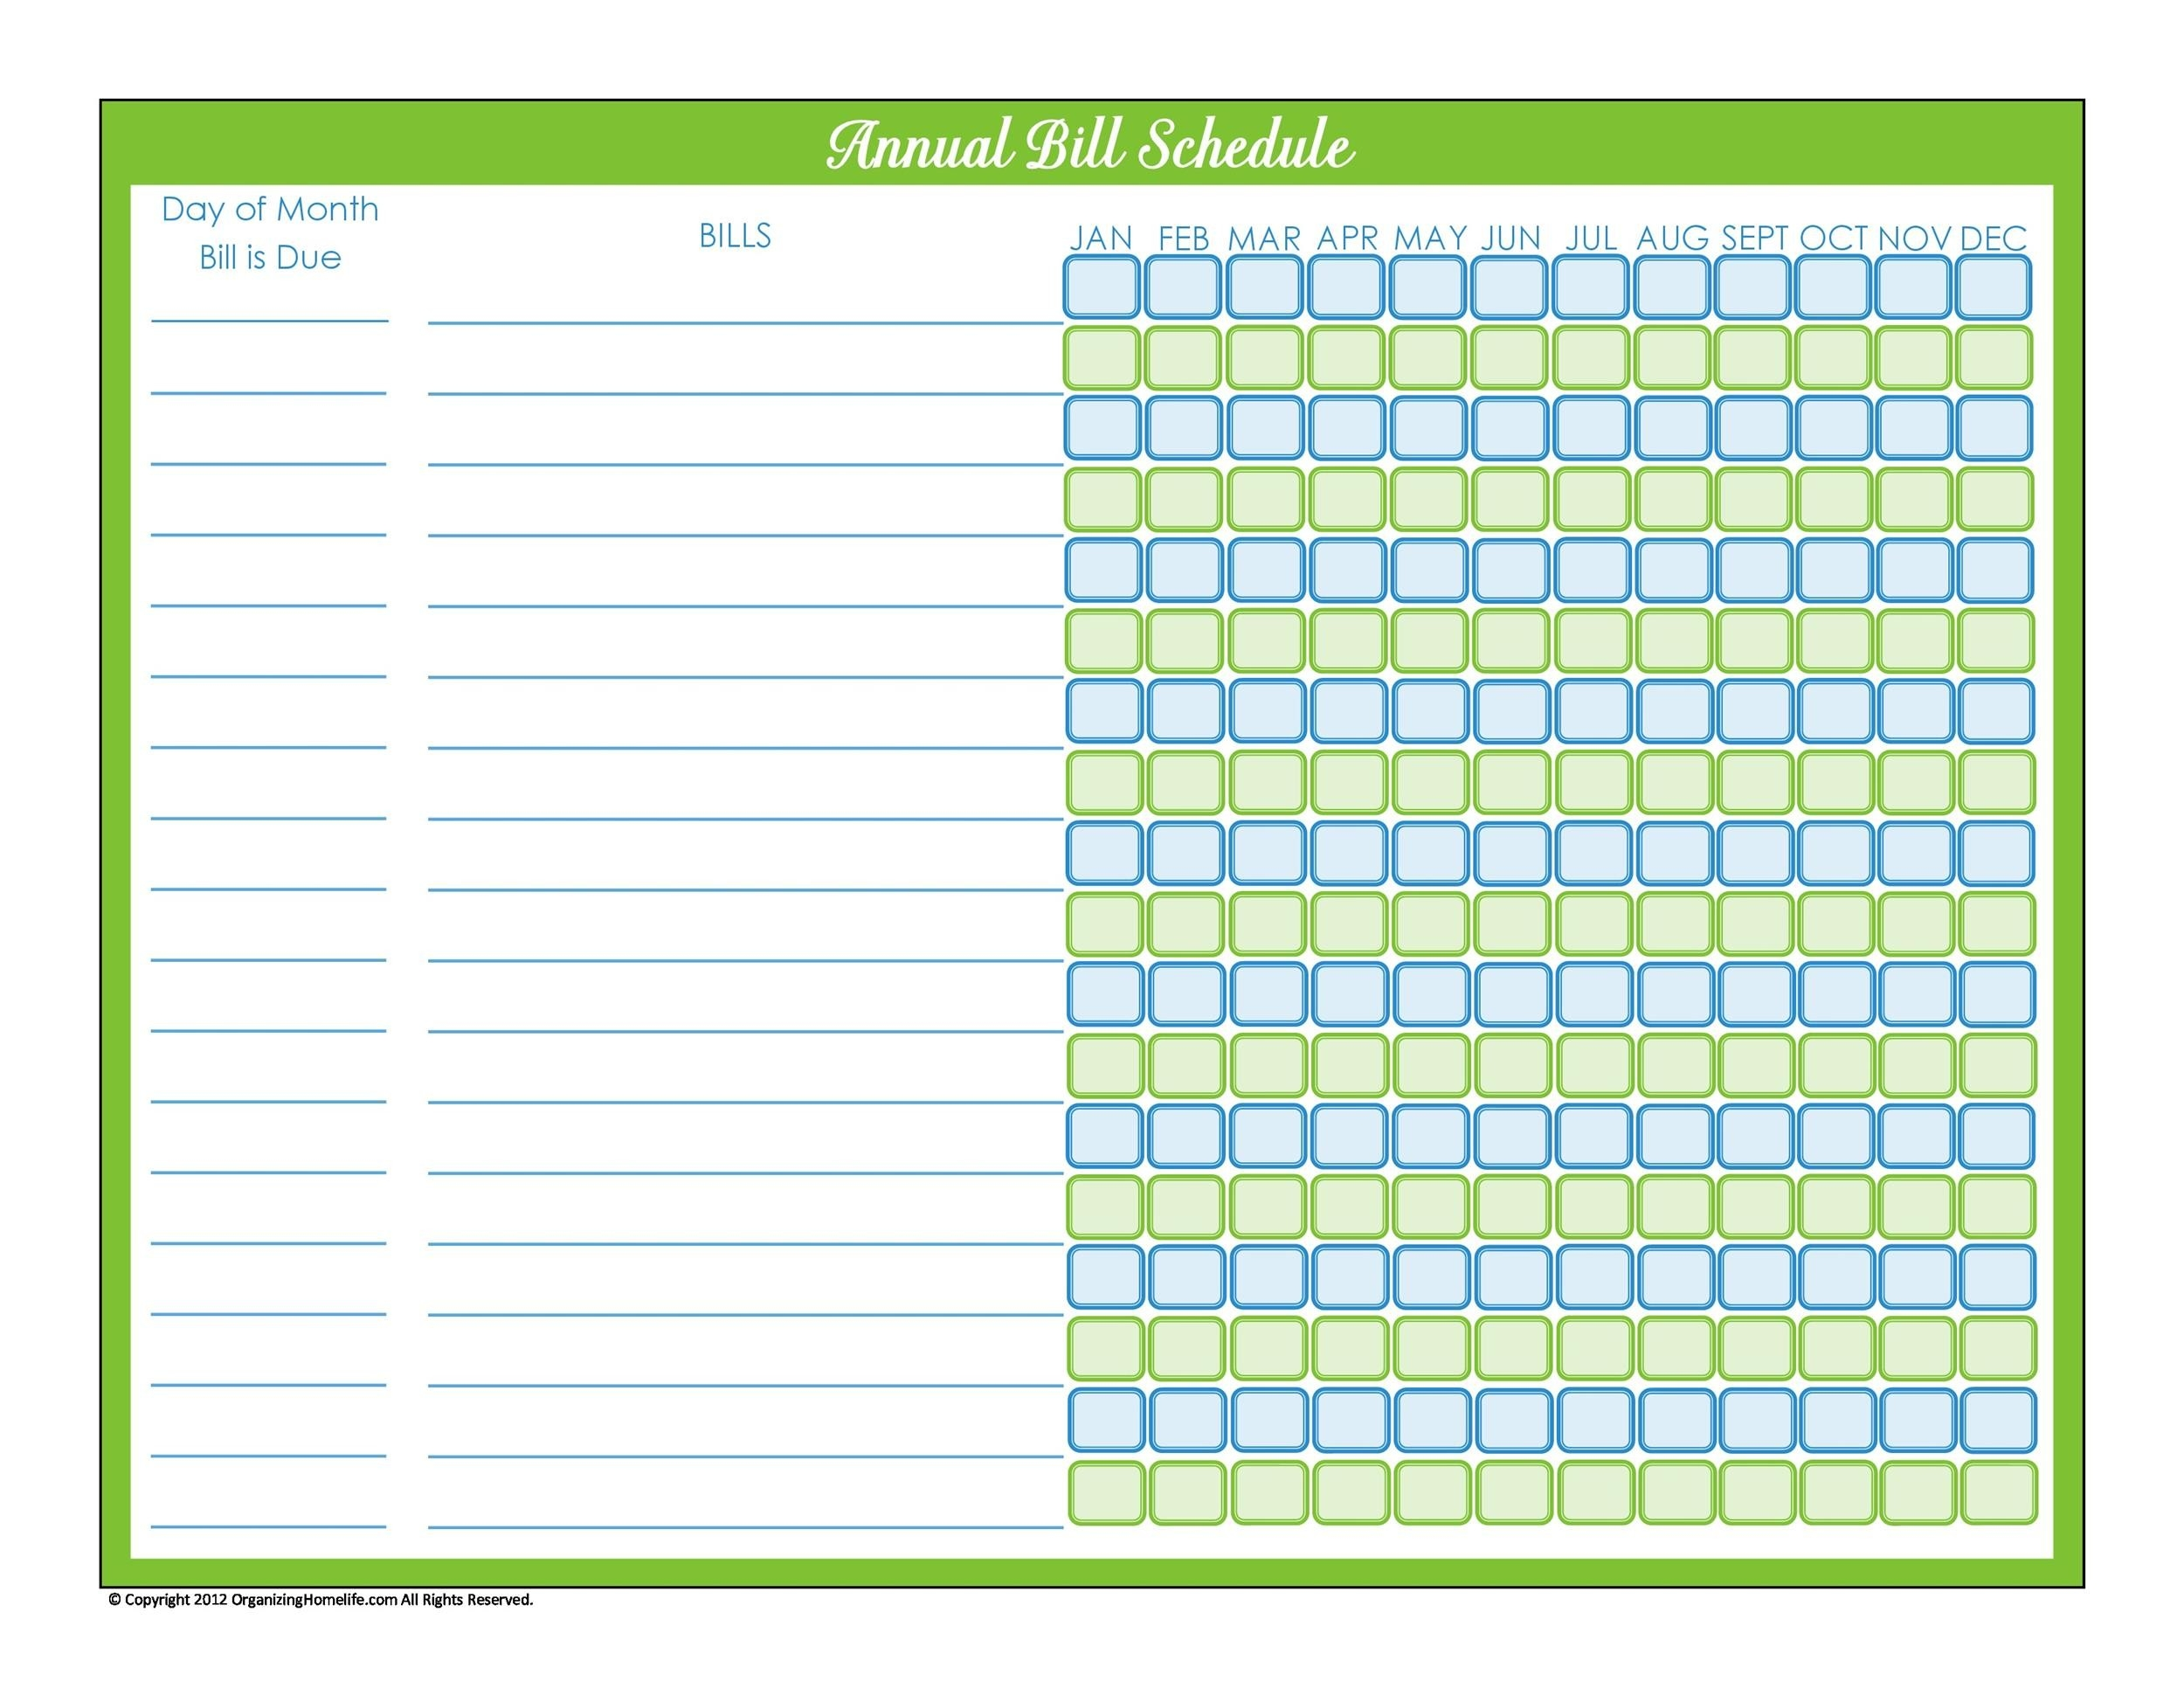 33 Free Bill Pay Checklists & Bill Calendars (Pdf, Word & Excel)  Free Printable Calendar Bill Pay